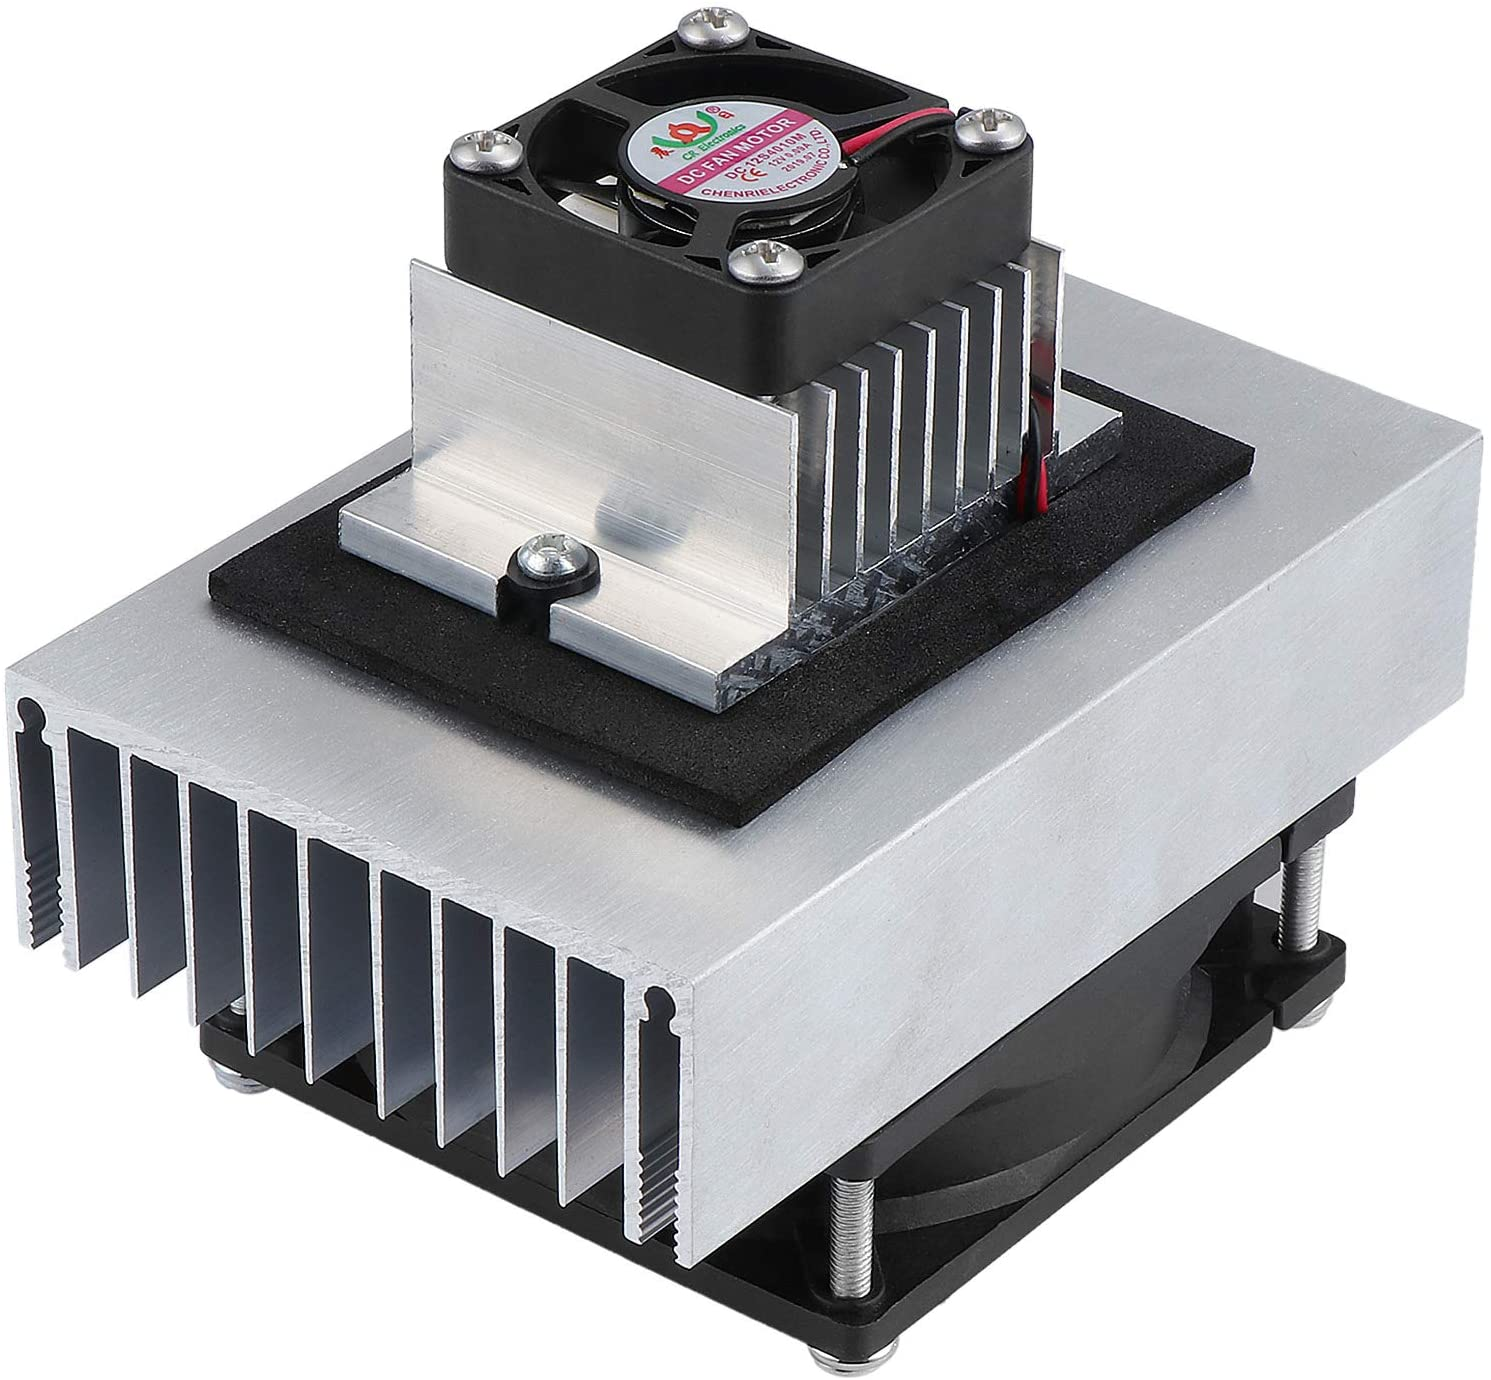 ESUMIC DC 12V DIY Thermoelectric Peltier Refrigeration Cooling System Kit Semiconductor Cooler Conduction Module + Radiator + Fan + TEC1-12706